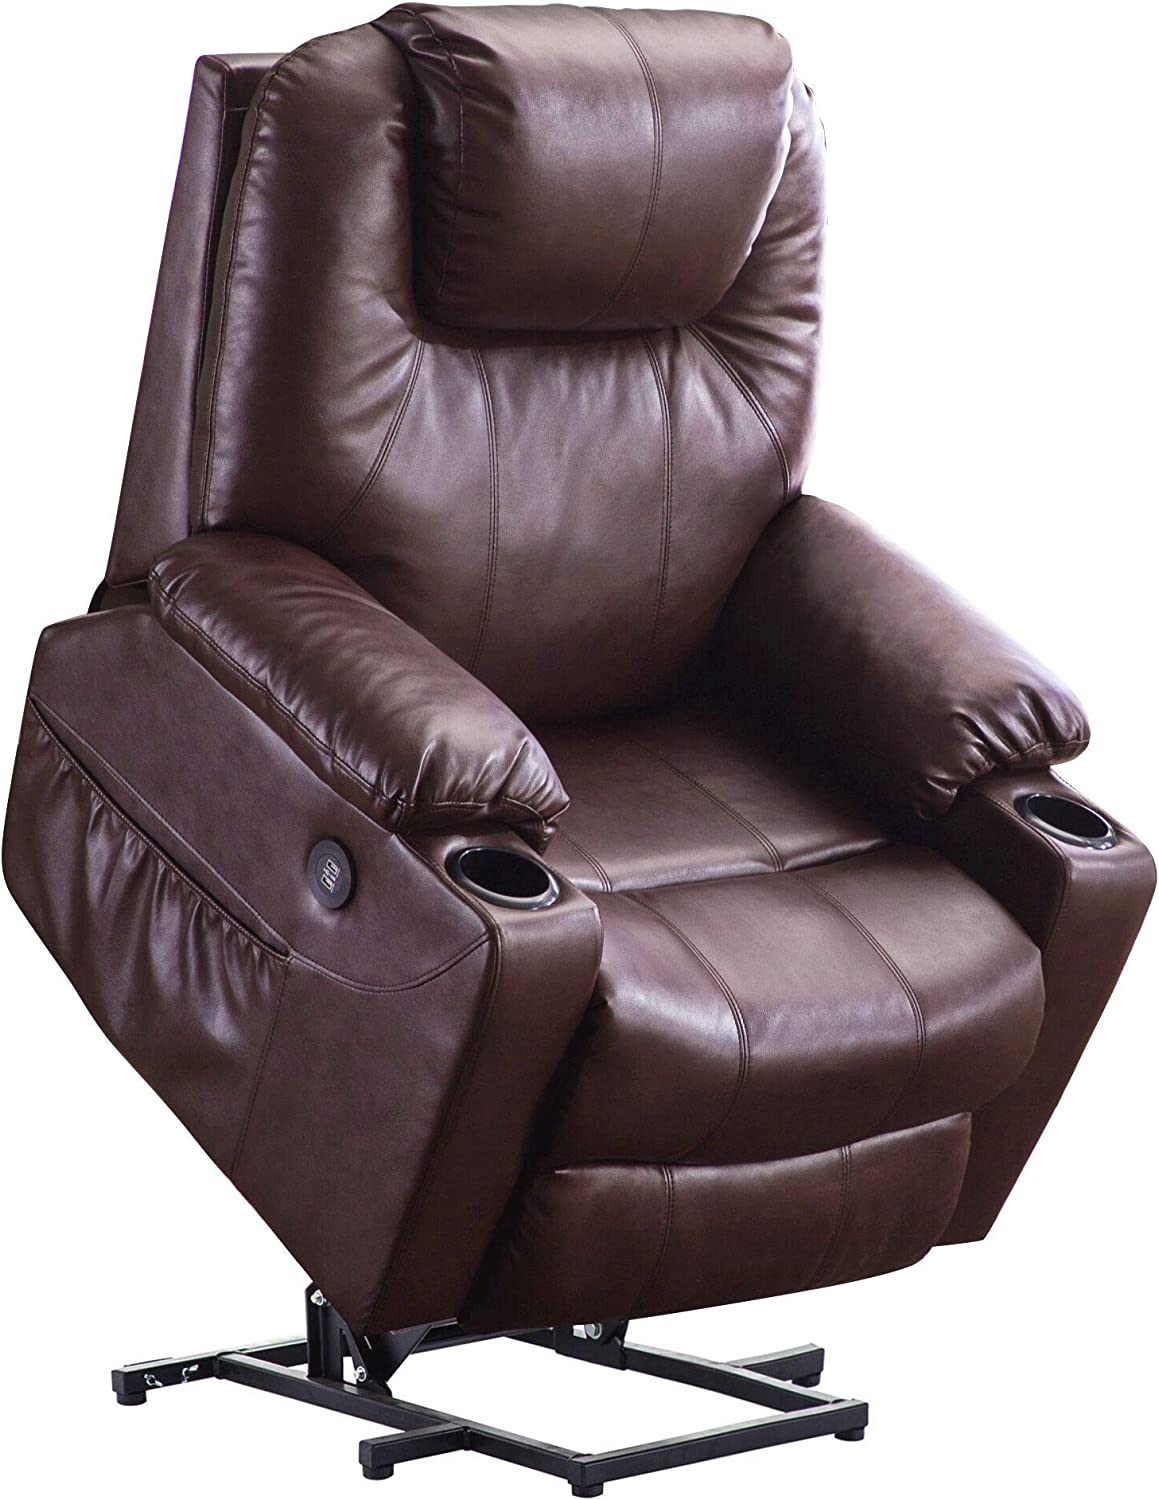 Mcombo Electric Power Lift Recliner Chair Sofa with Massage